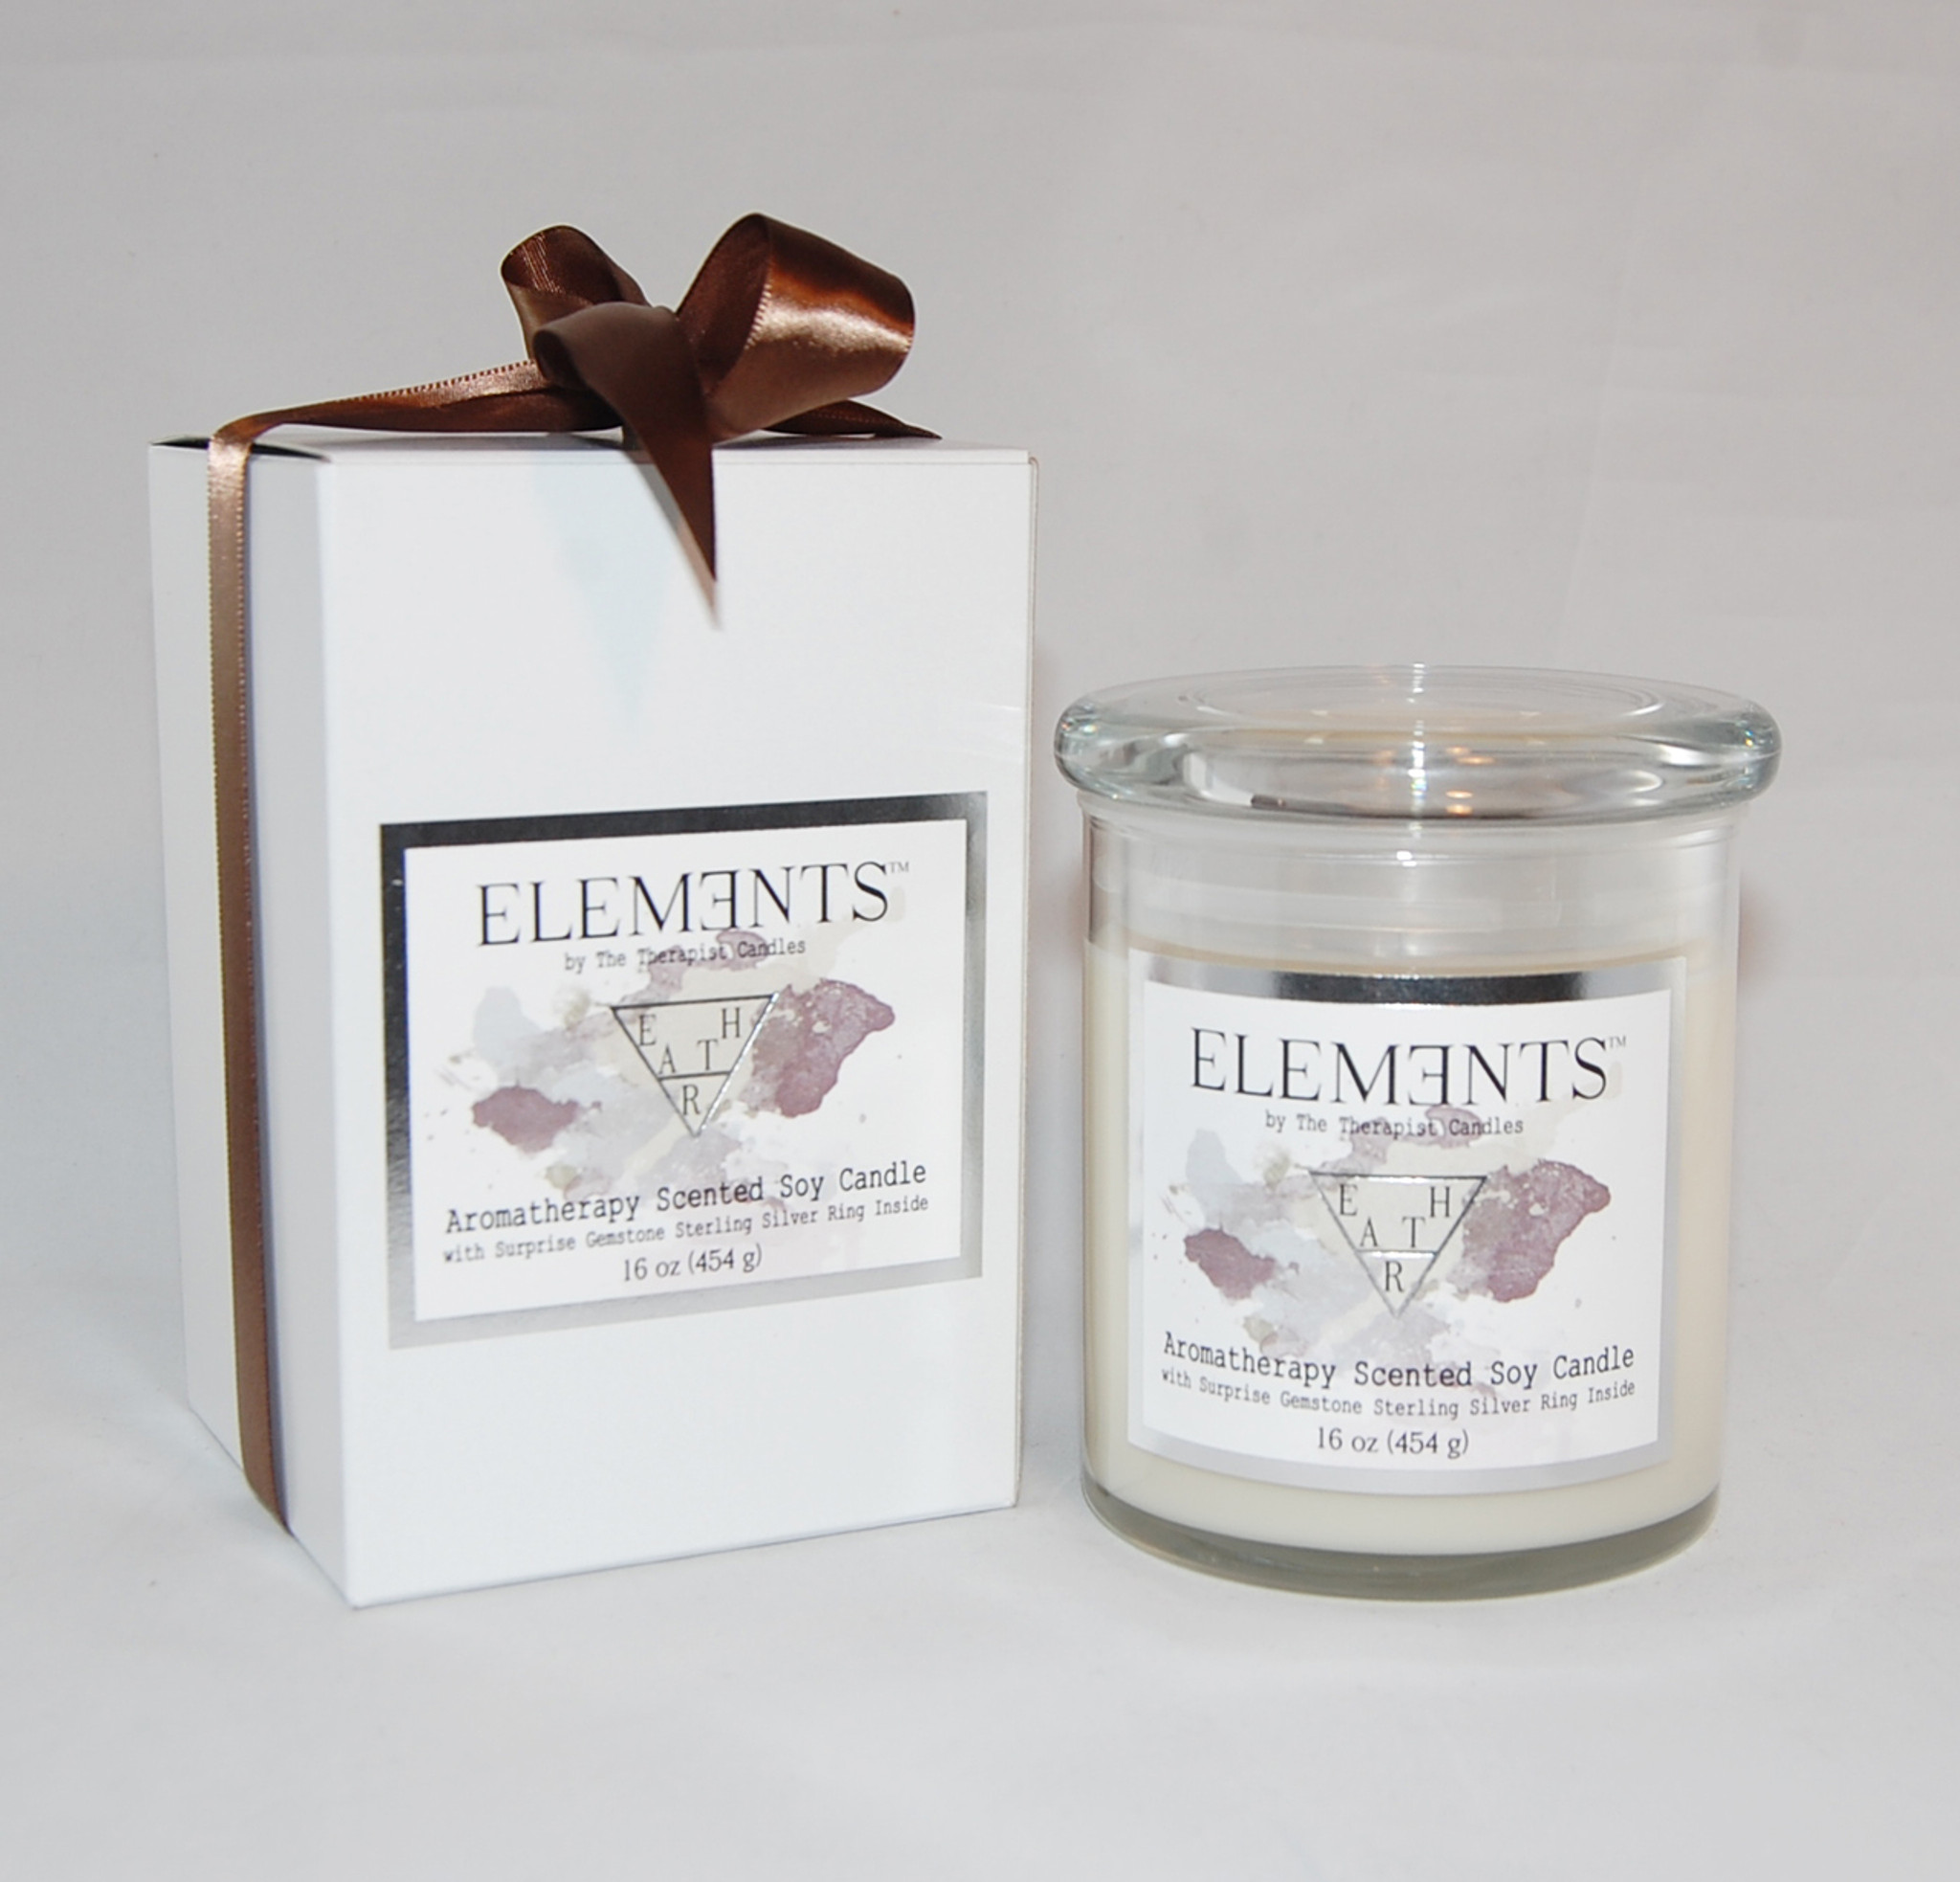 ELEMENTS RING CANDLE - AROMATHERAPY CANDLE WITH STERLING SILVER ...